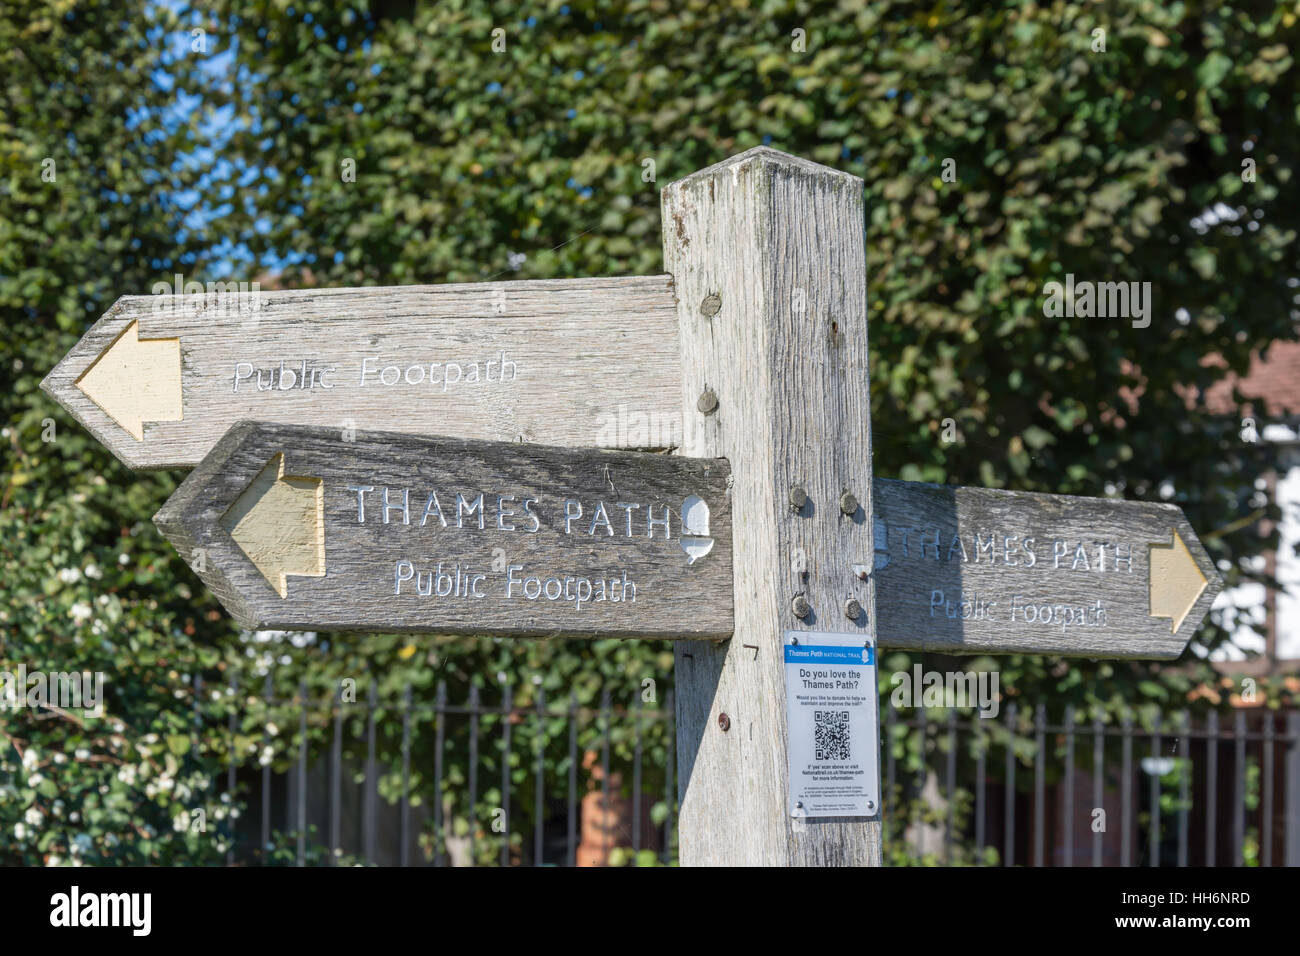 Thames Path sign post on River Thames towpath, Old Windsor, Berkshire, England, United Kingdom - Stock Image